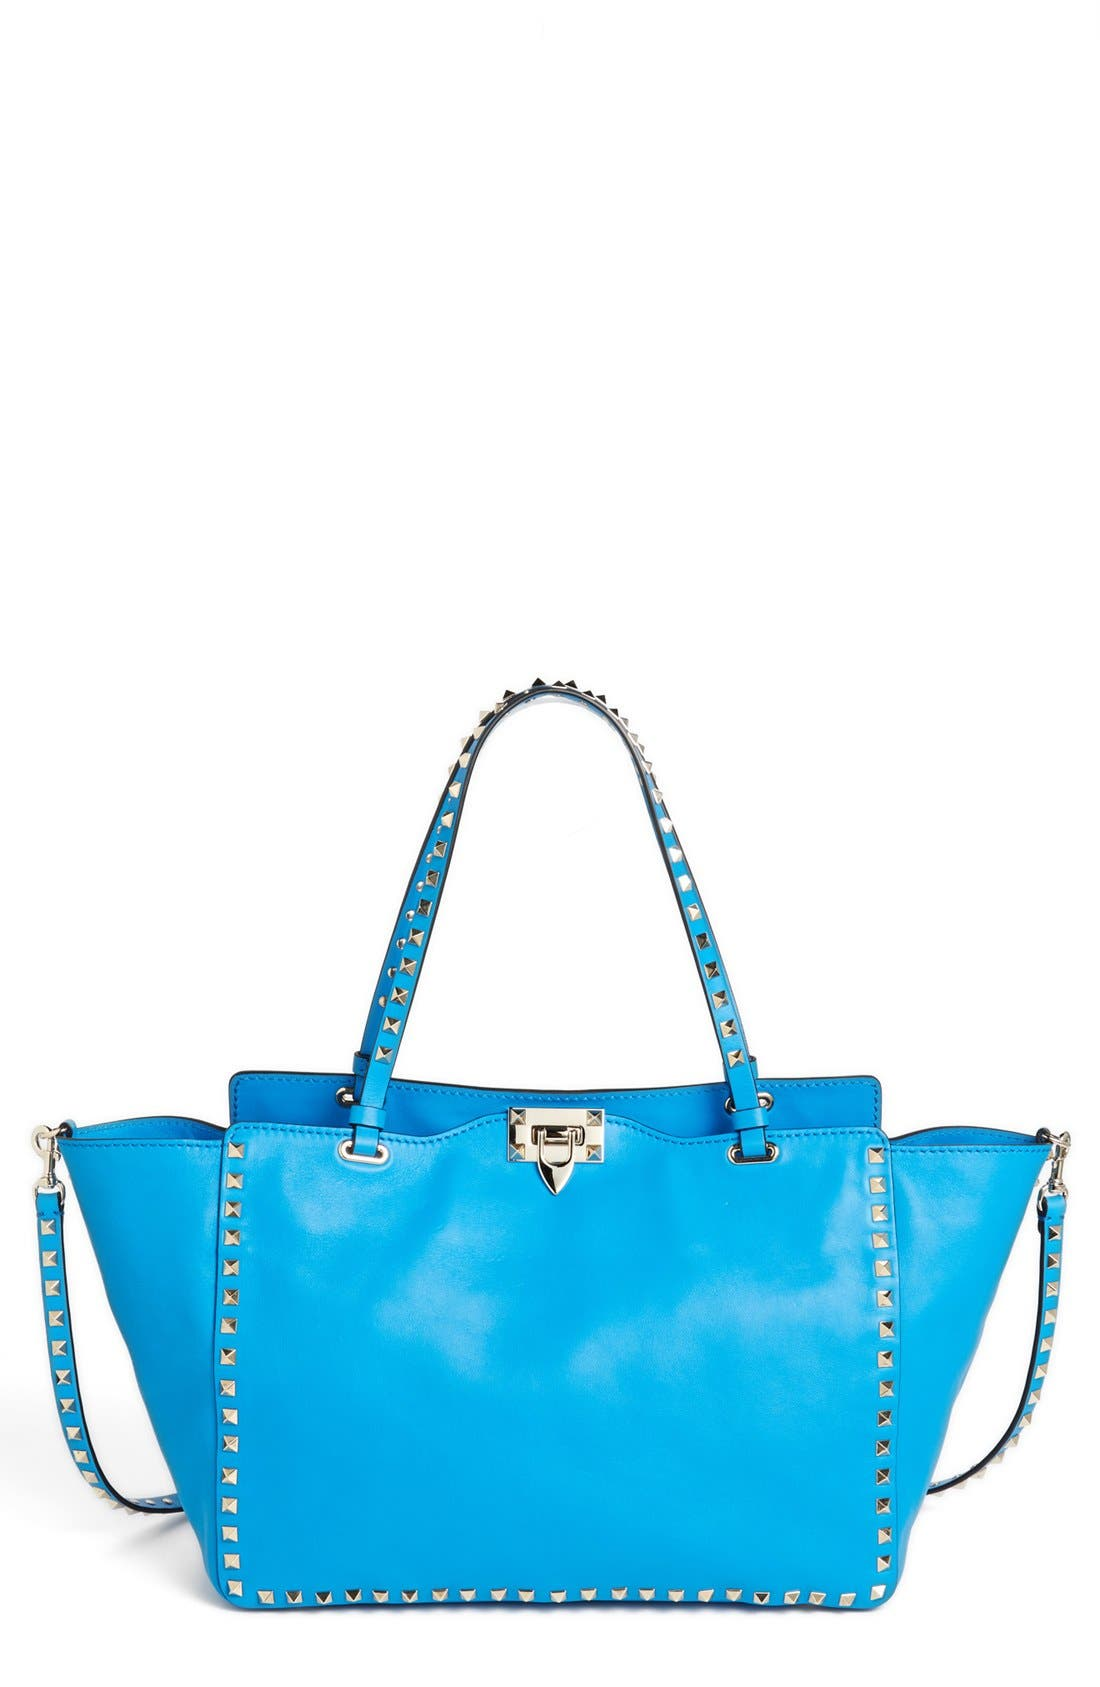 Alternate Image 1 Selected - Valentino 'Rockstud - Medium' Double Handle Leather Tote